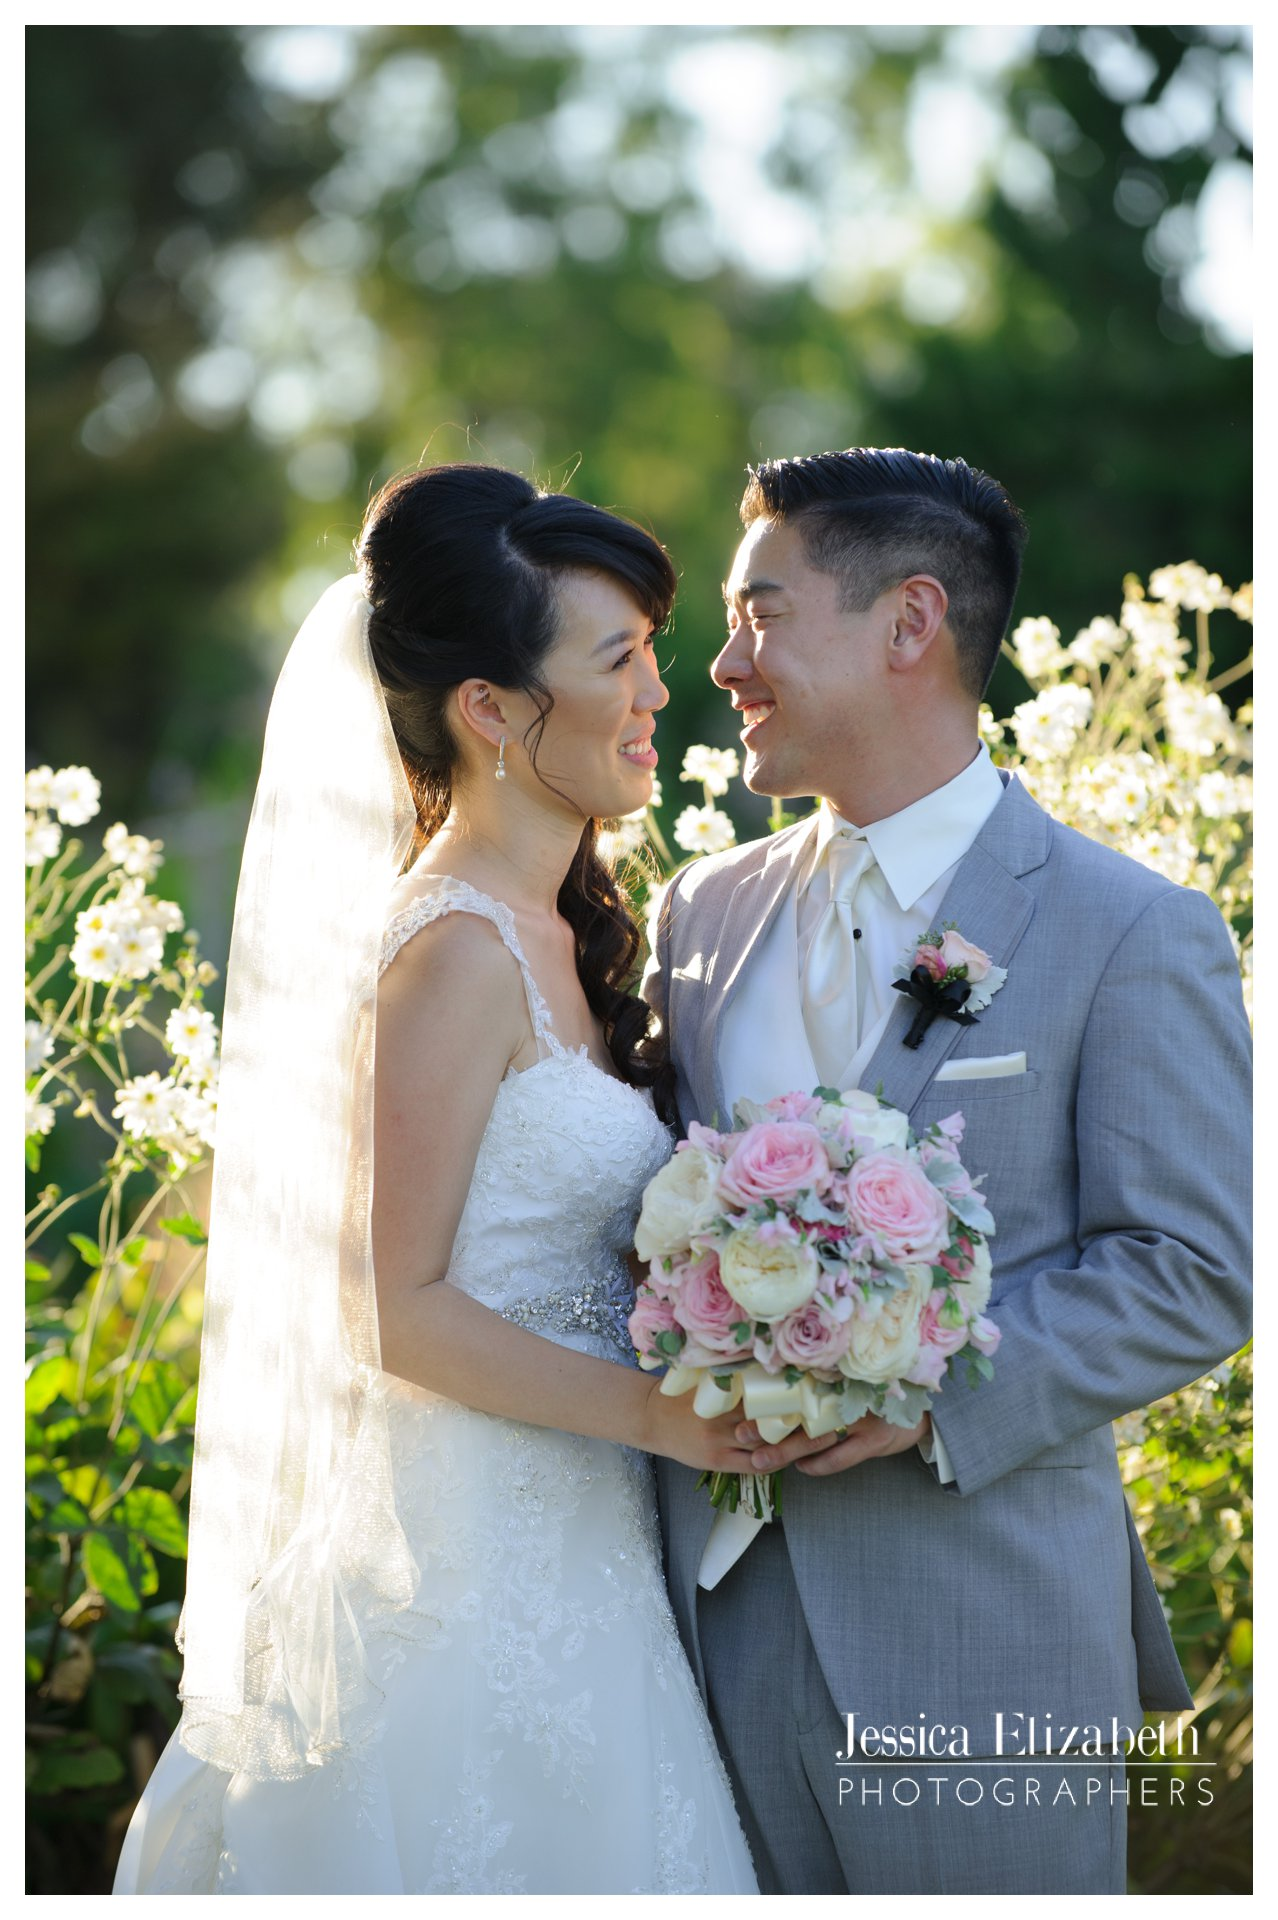 25-South Coast Botanic Garden Palos Verdes Wedding Photography by Jessica Elizabeth